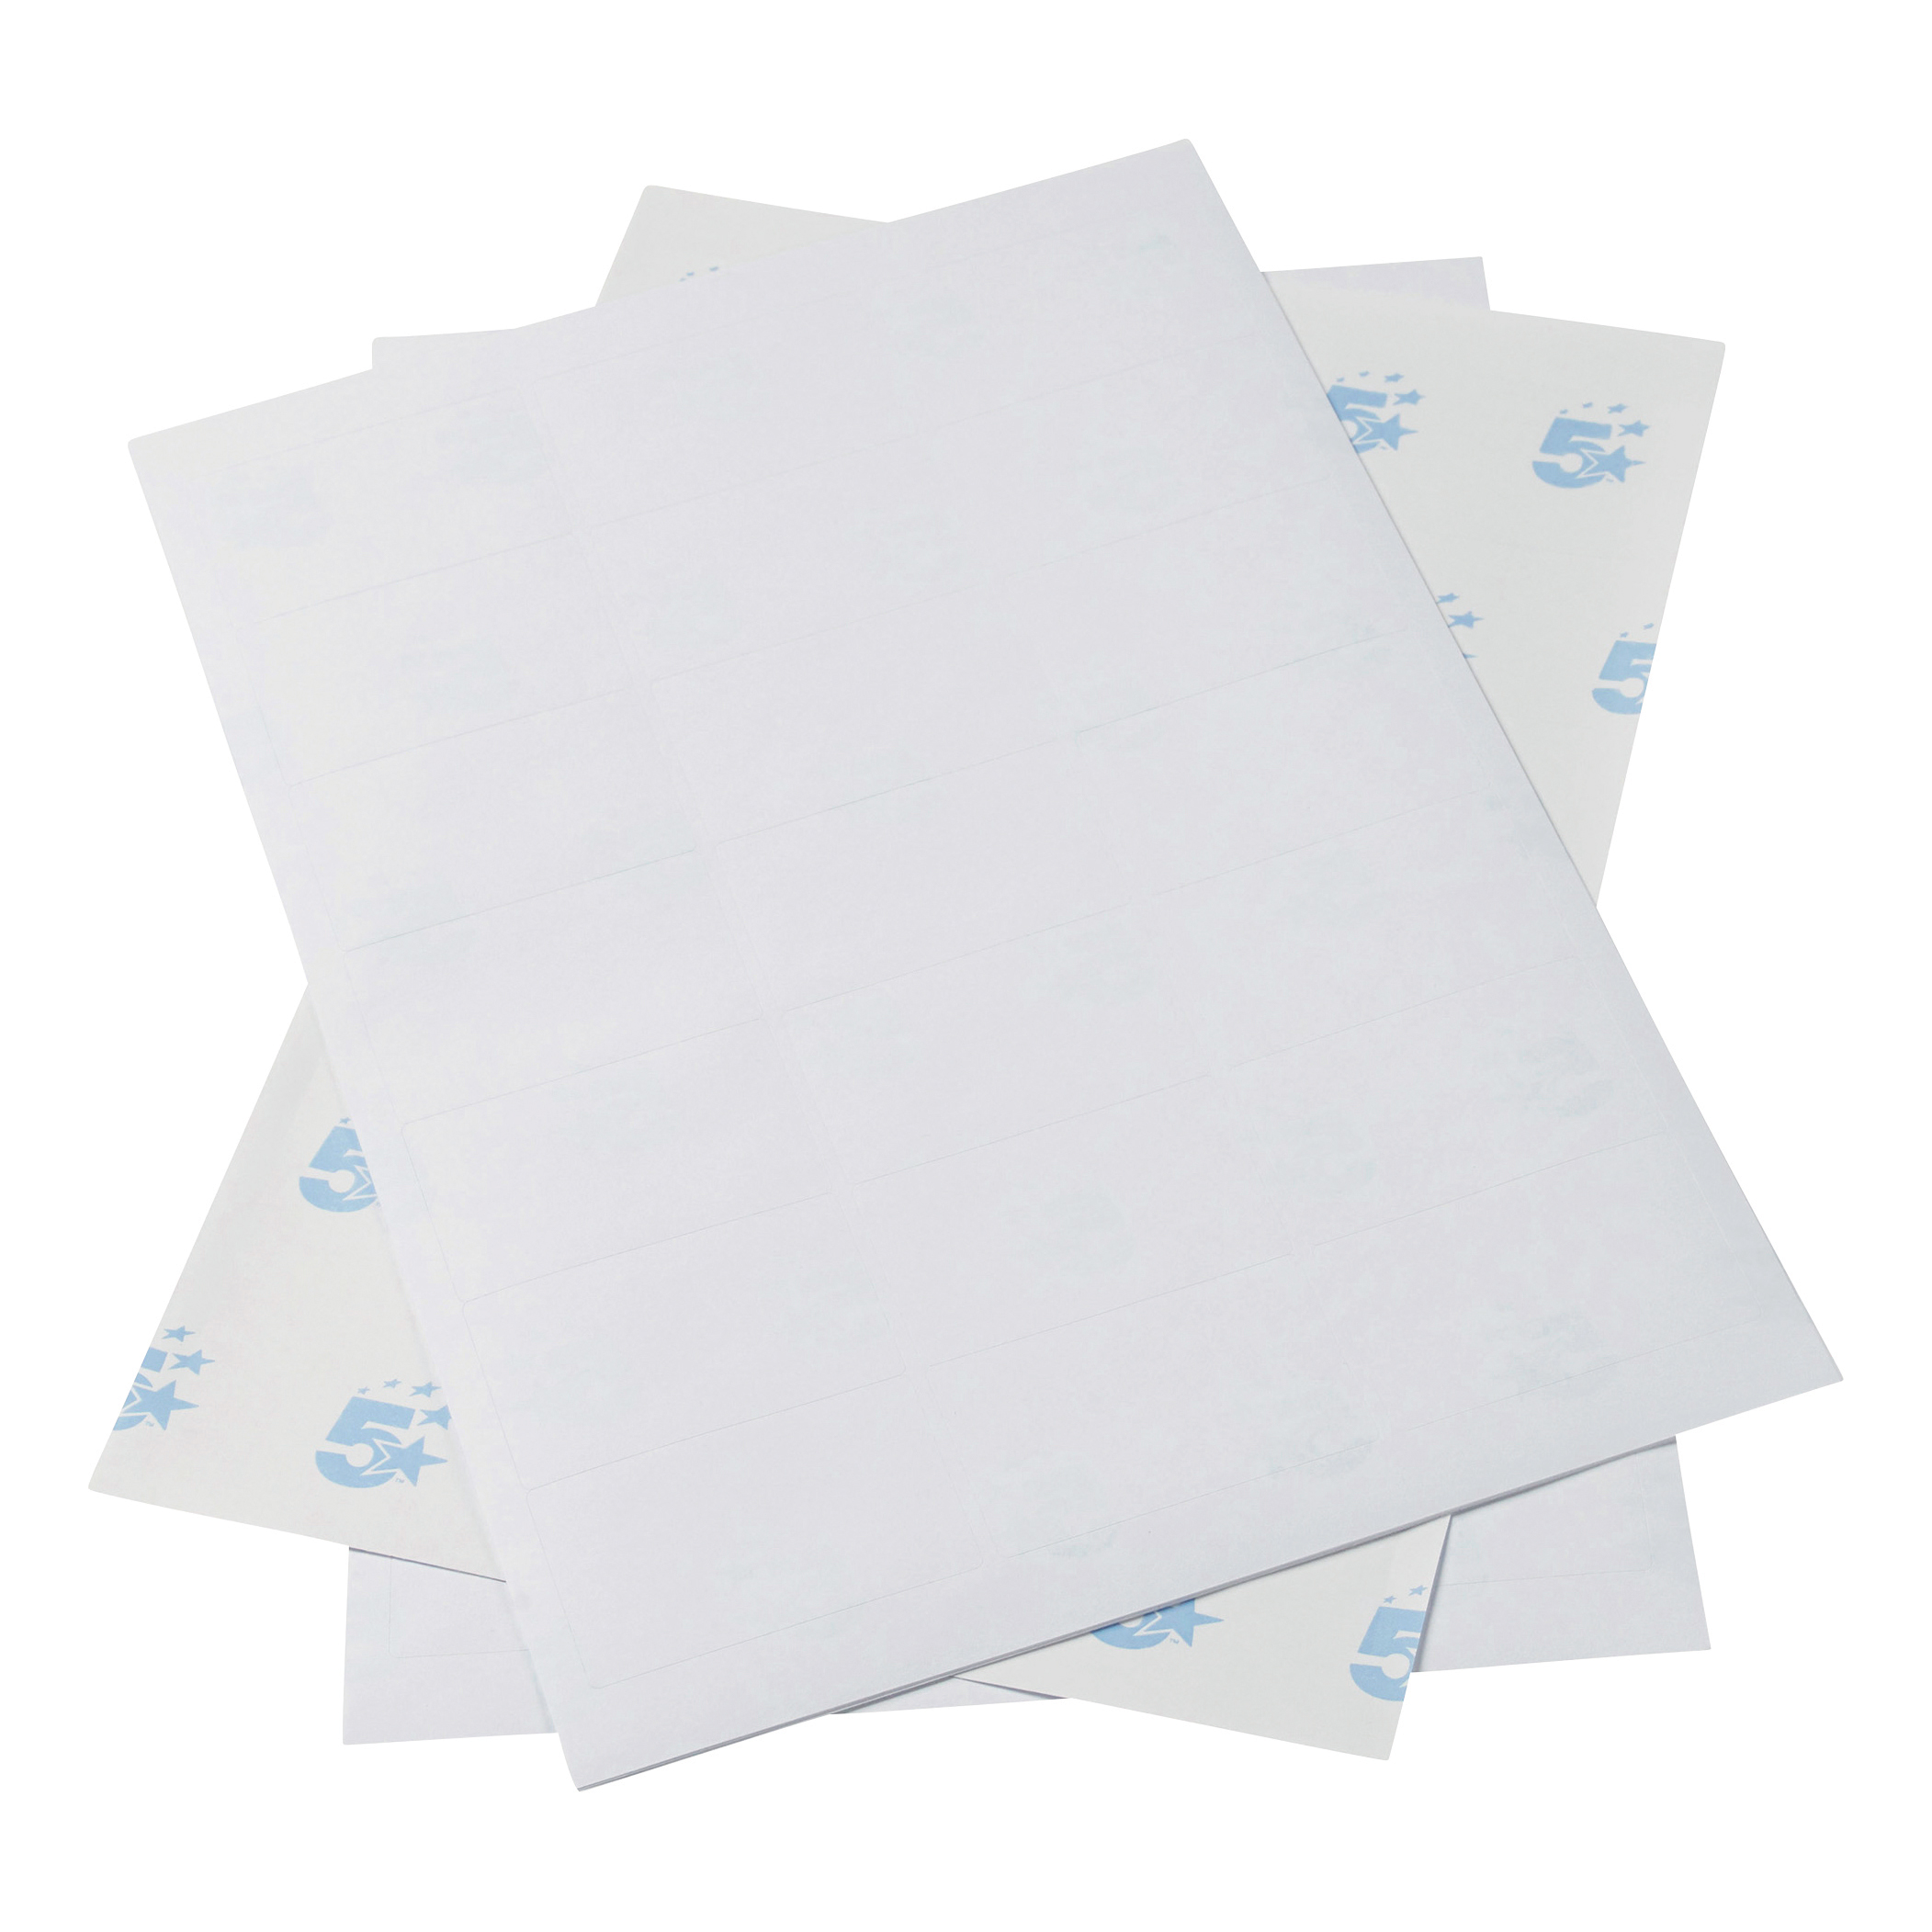 5 Star Office Multipurpose Labels Laser Copier Inkjet 21 per Sheet 64x38mm White 10500 Labels